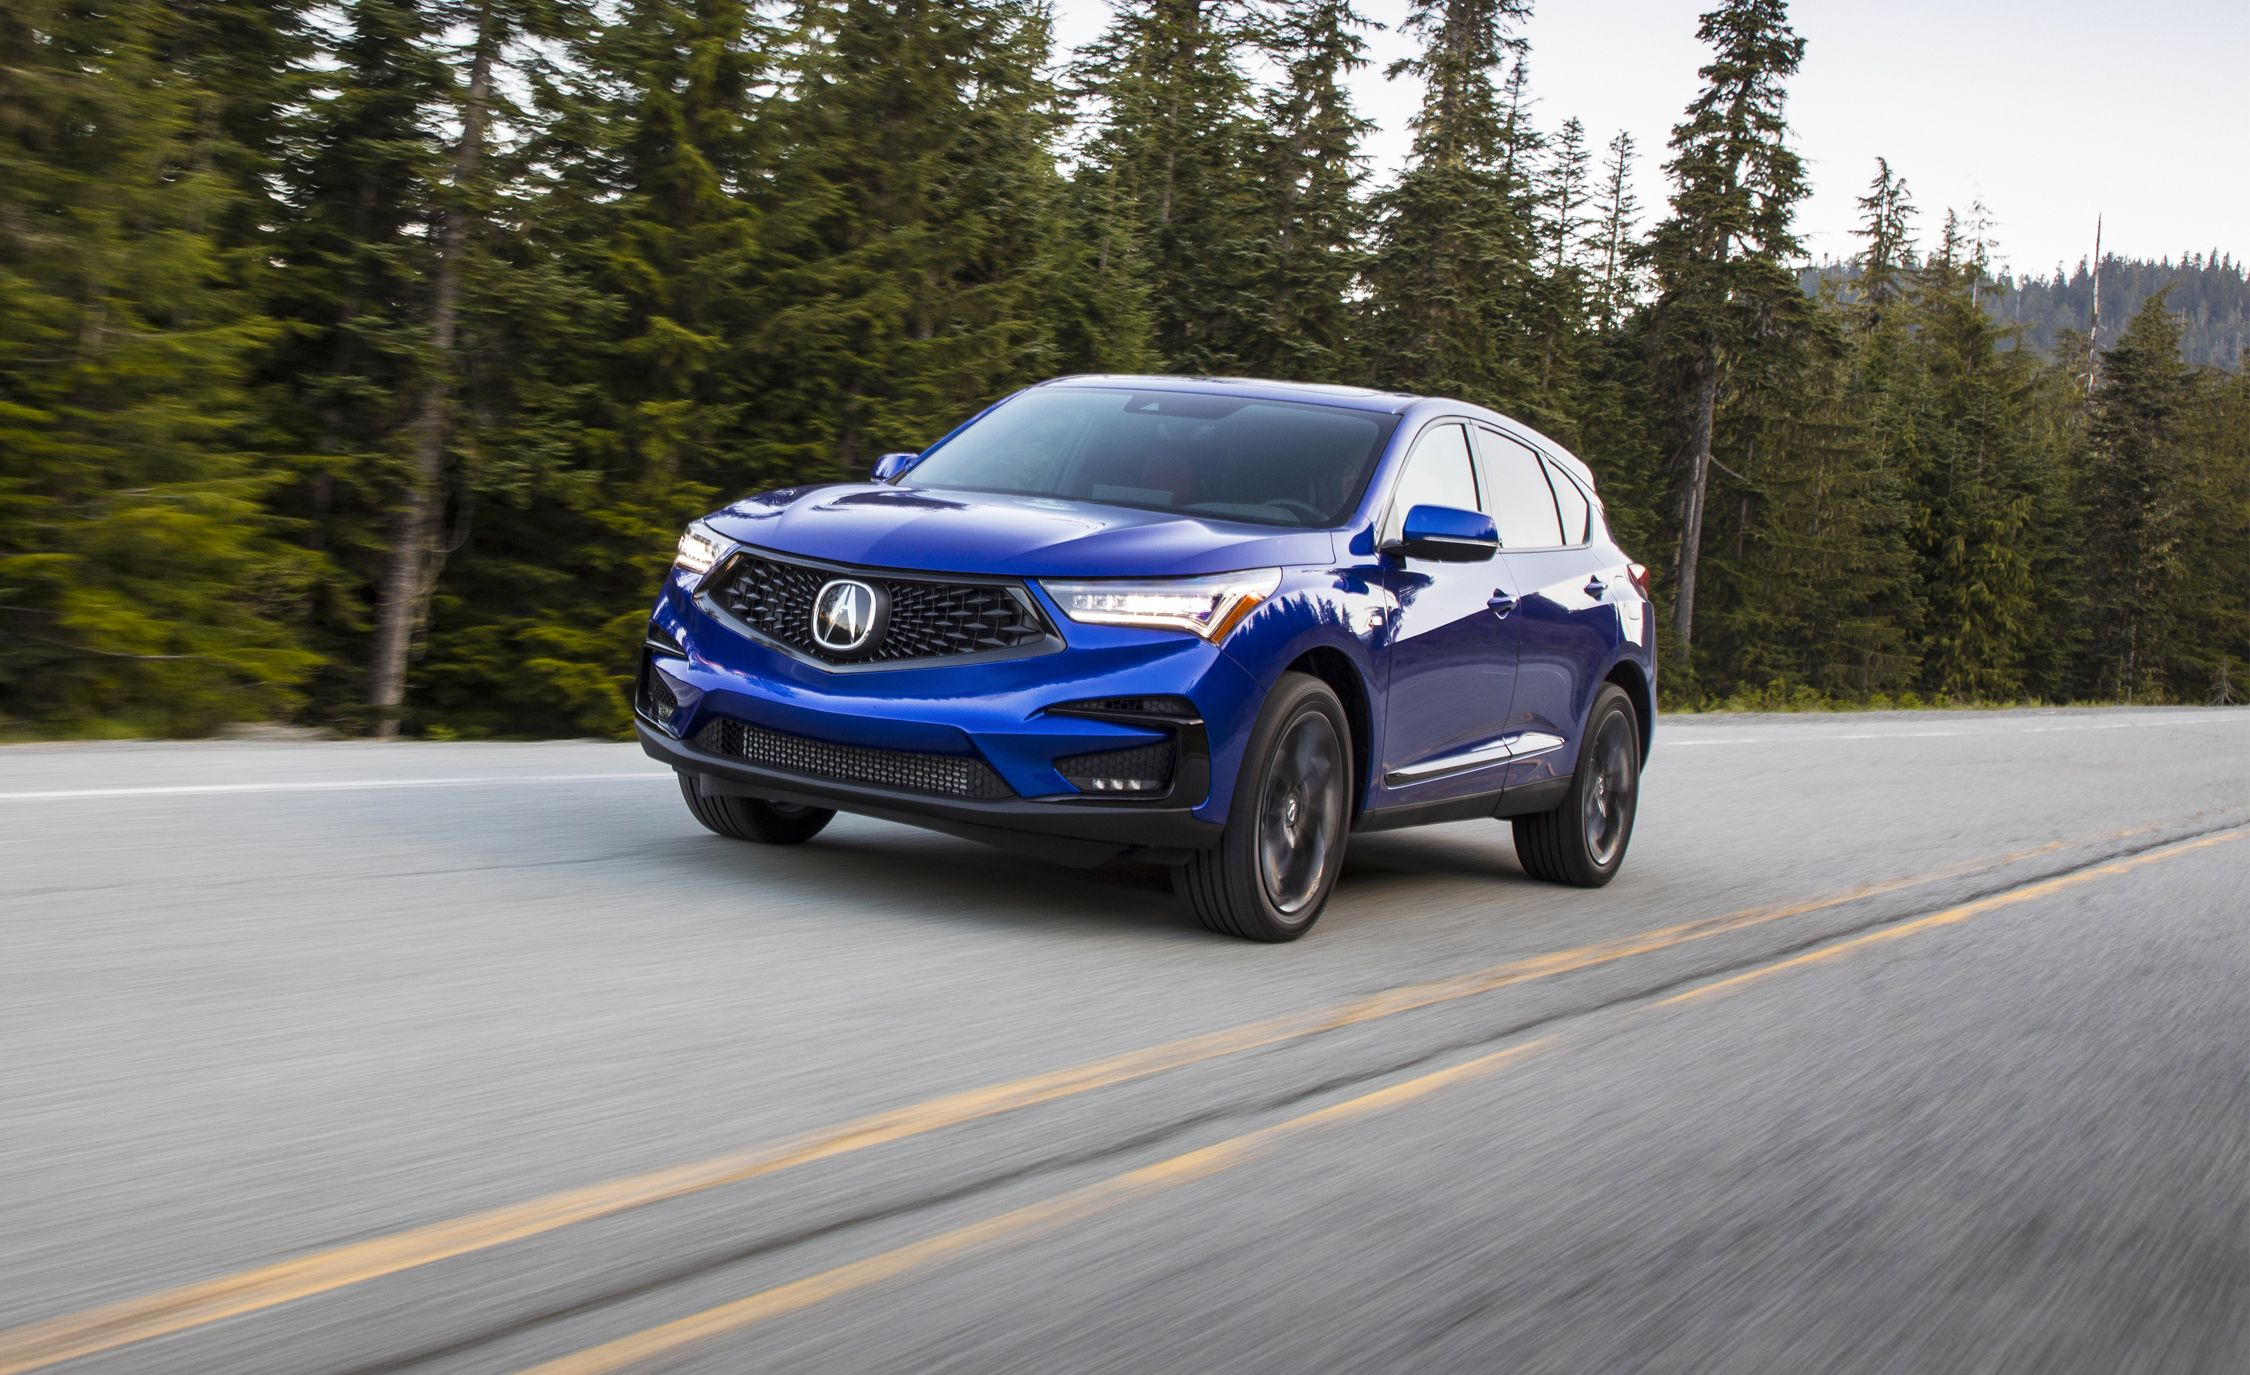 2019 Acura Rdx First Drive Now With An Actual Personality Review Car And Driver